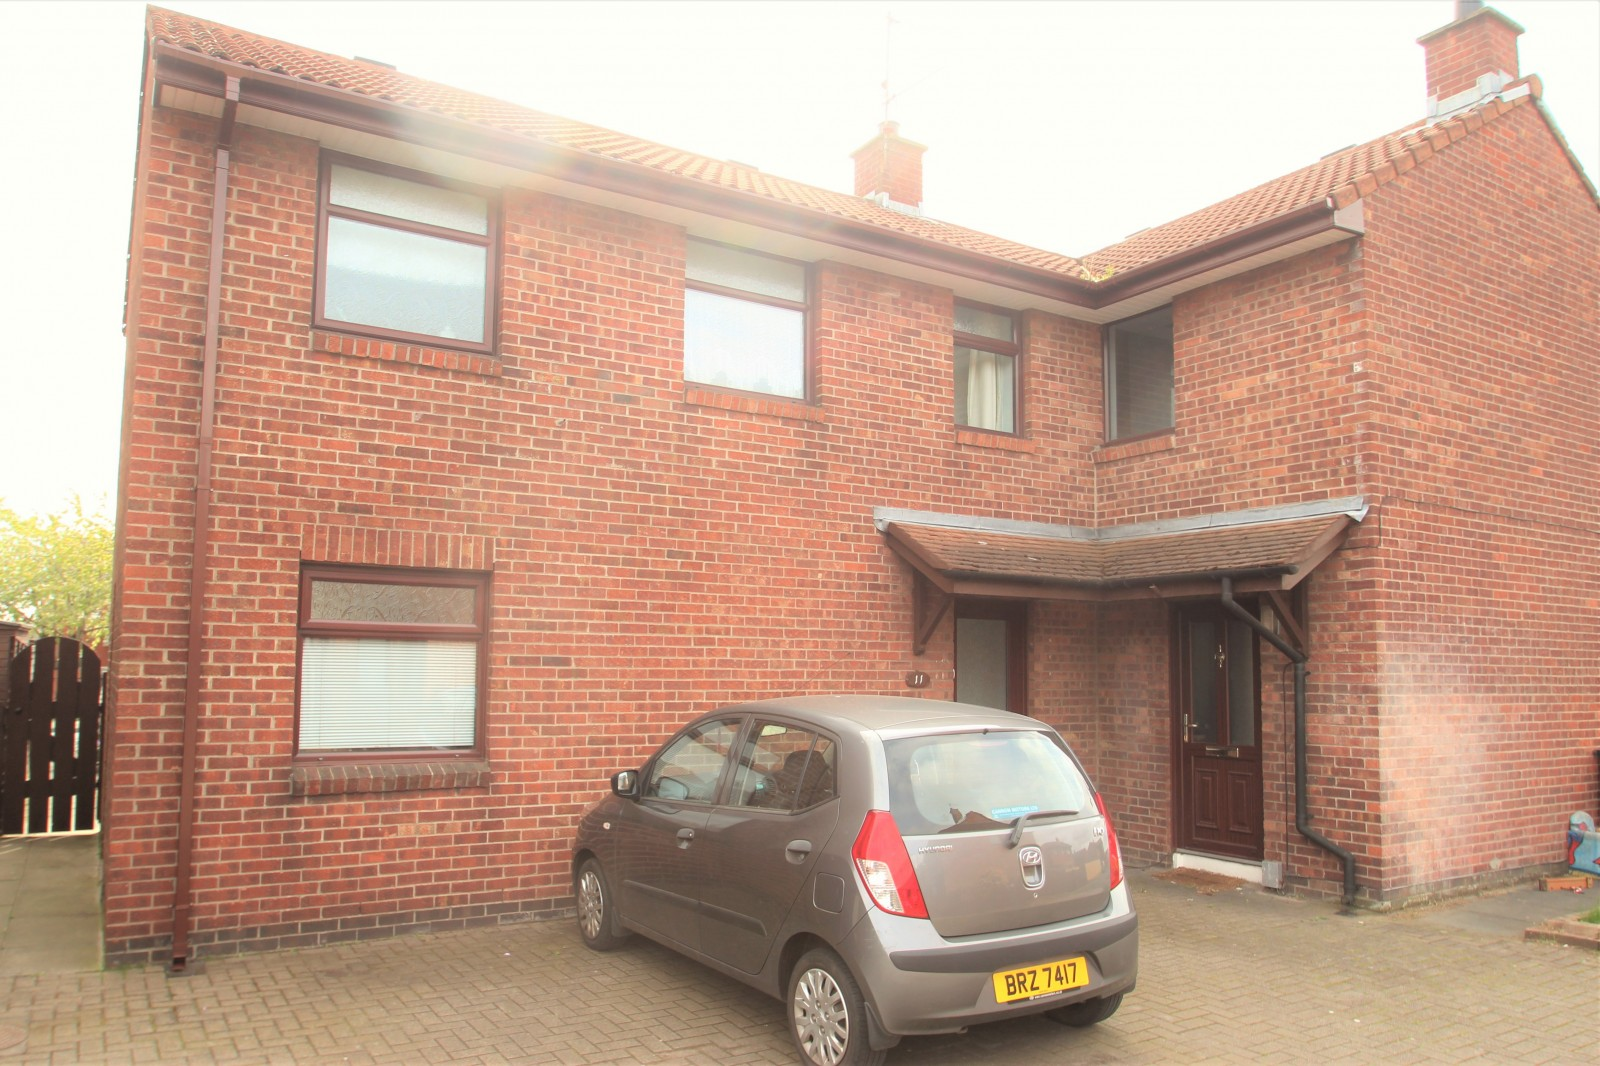 11 Silver Birch Courts, Shankill, Belfast, BT13 2JJ